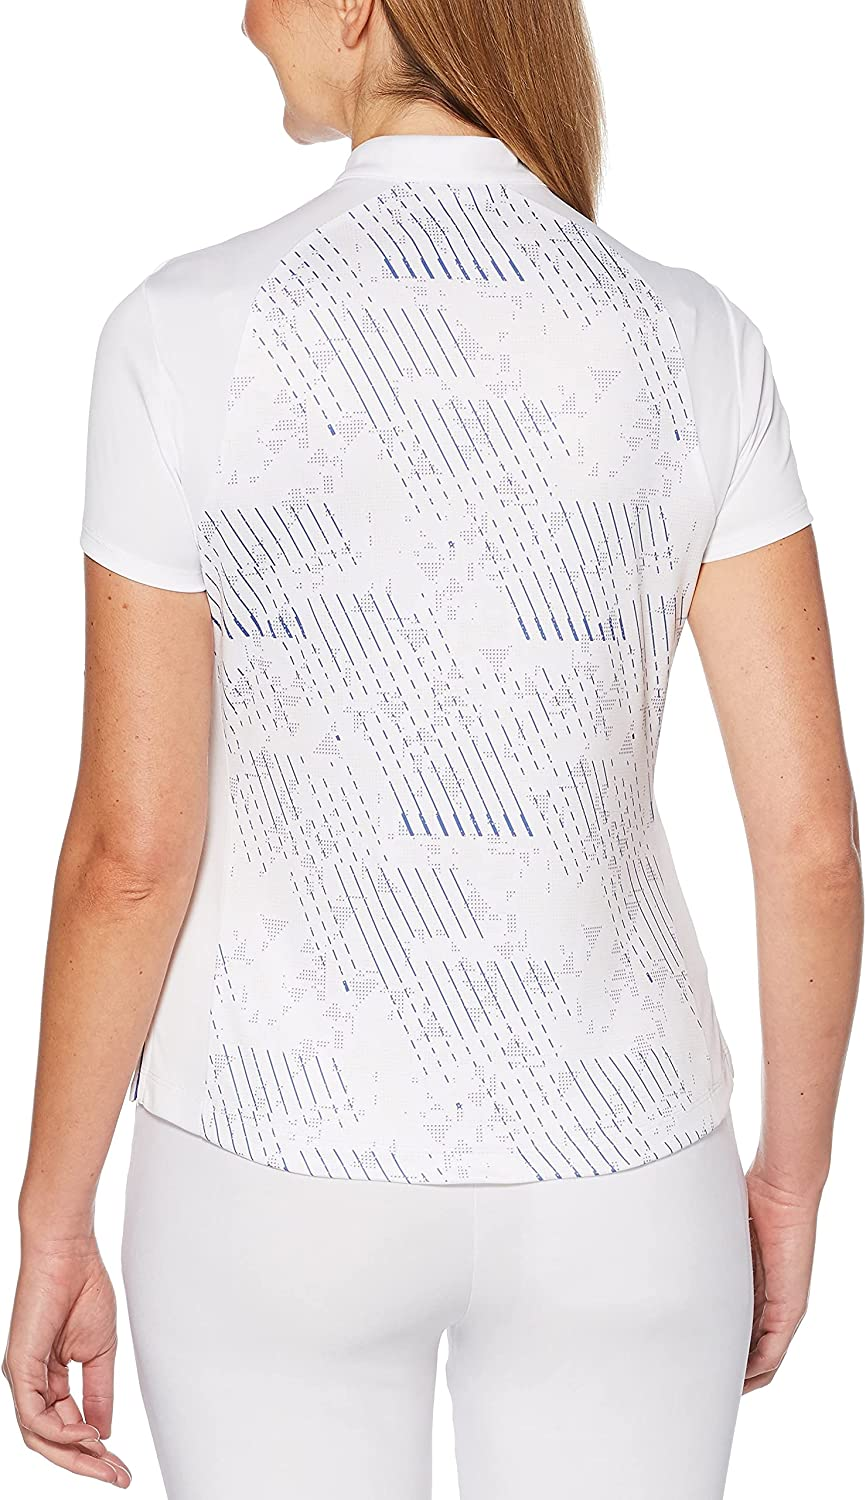 PGA Tour Women's Printed V-Neck online shop Golf White Bright Polo Shirt sold out X-S